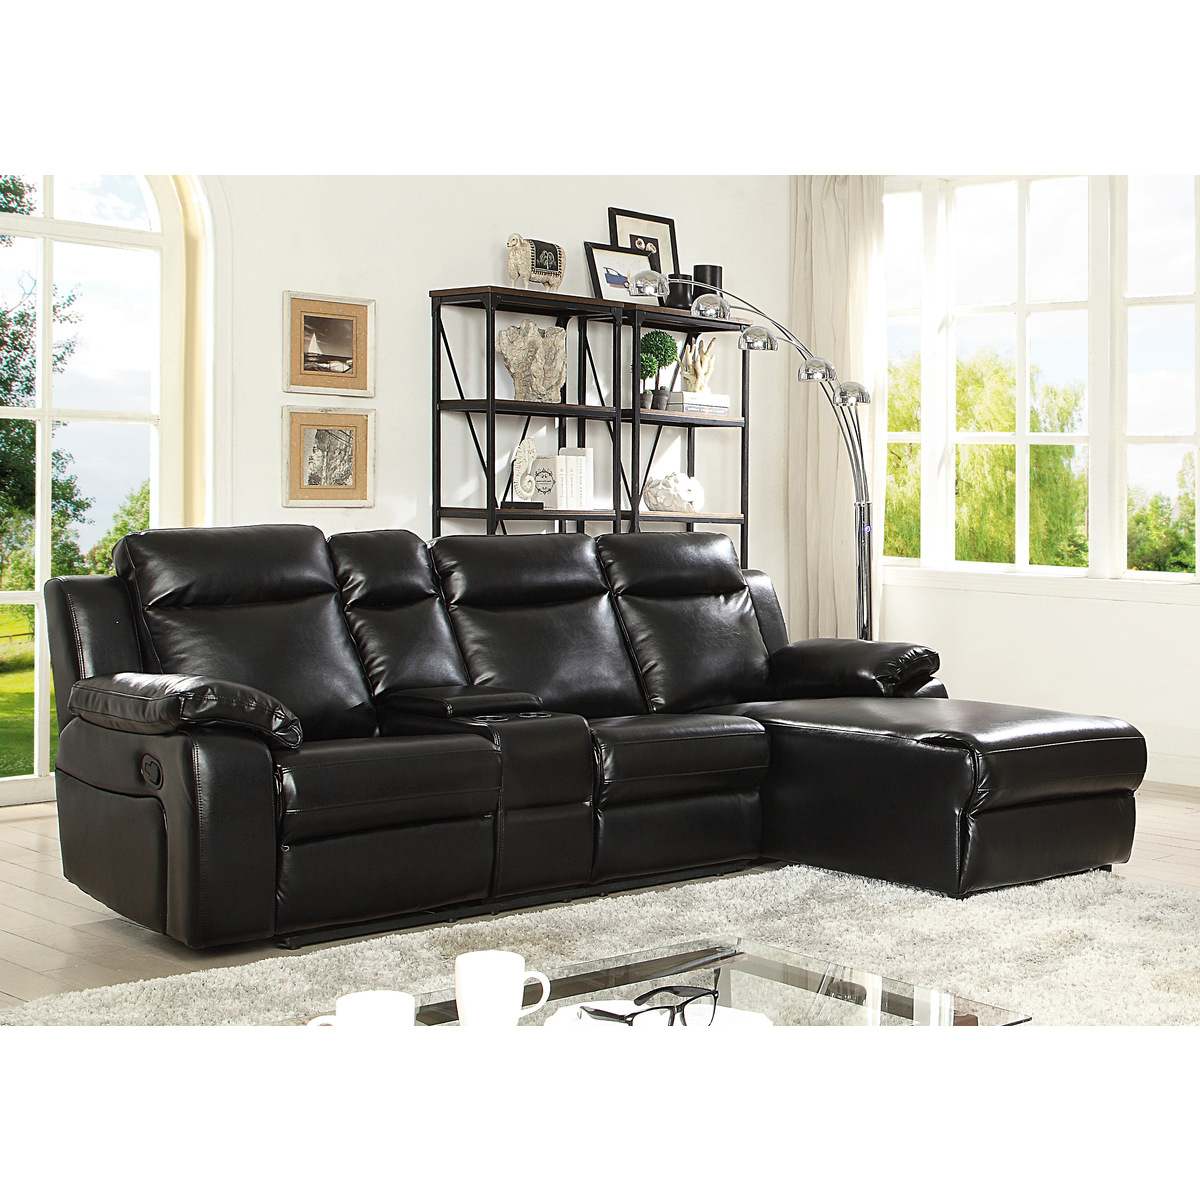 Favorite 9110blkss 2pc Sofa Chaise Black For 2pc Connel Modern Chaise Sectional Sofas Black (View 19 of 20)